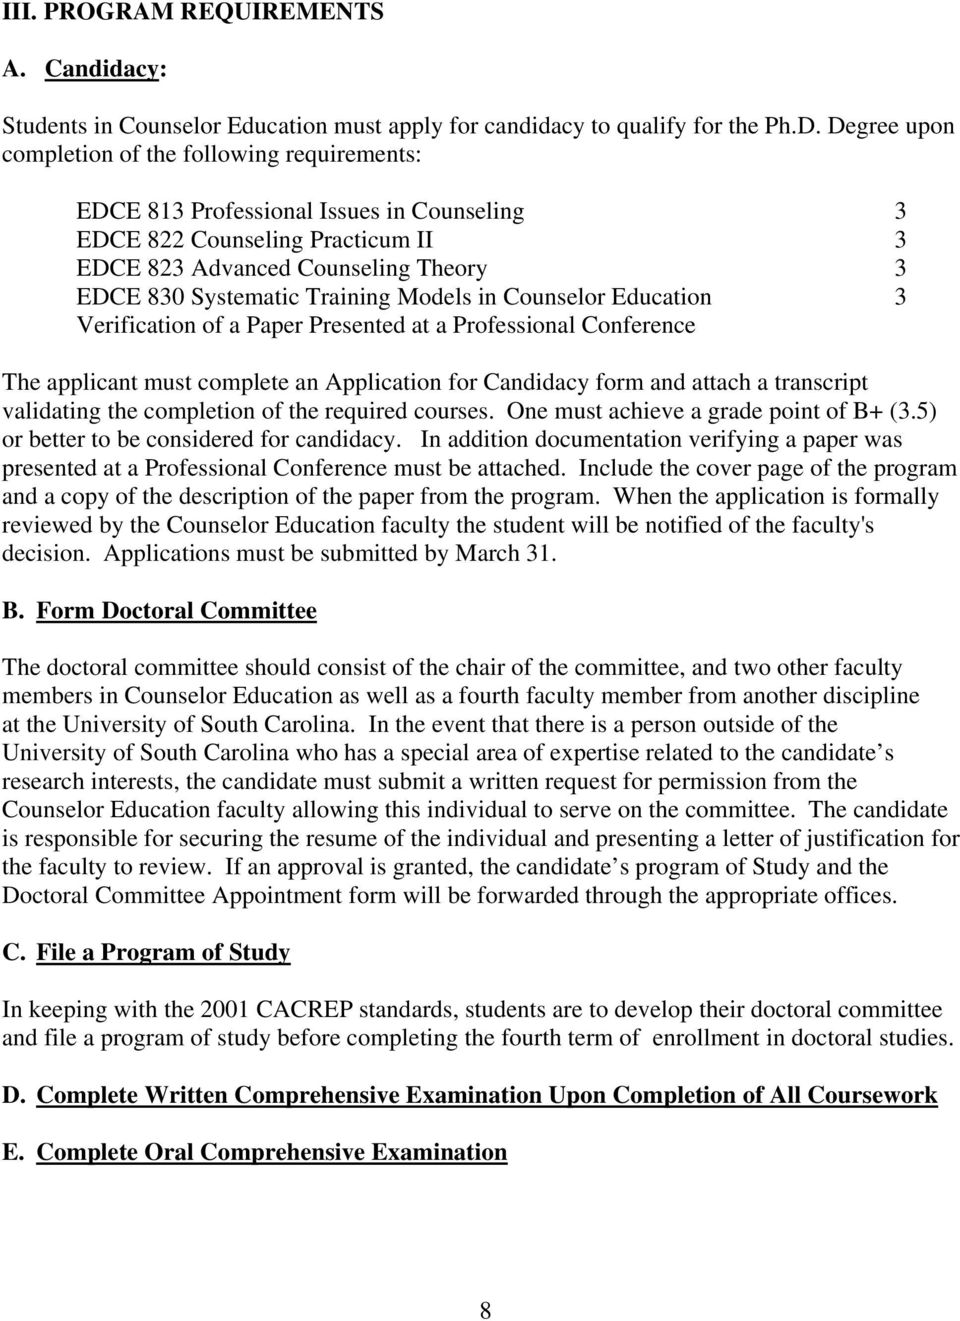 Training Models in Counselor Education 3 Verification of a Paper Presented at a Professional Conference The applicant must complete an Application for Candidacy form and attach a transcript